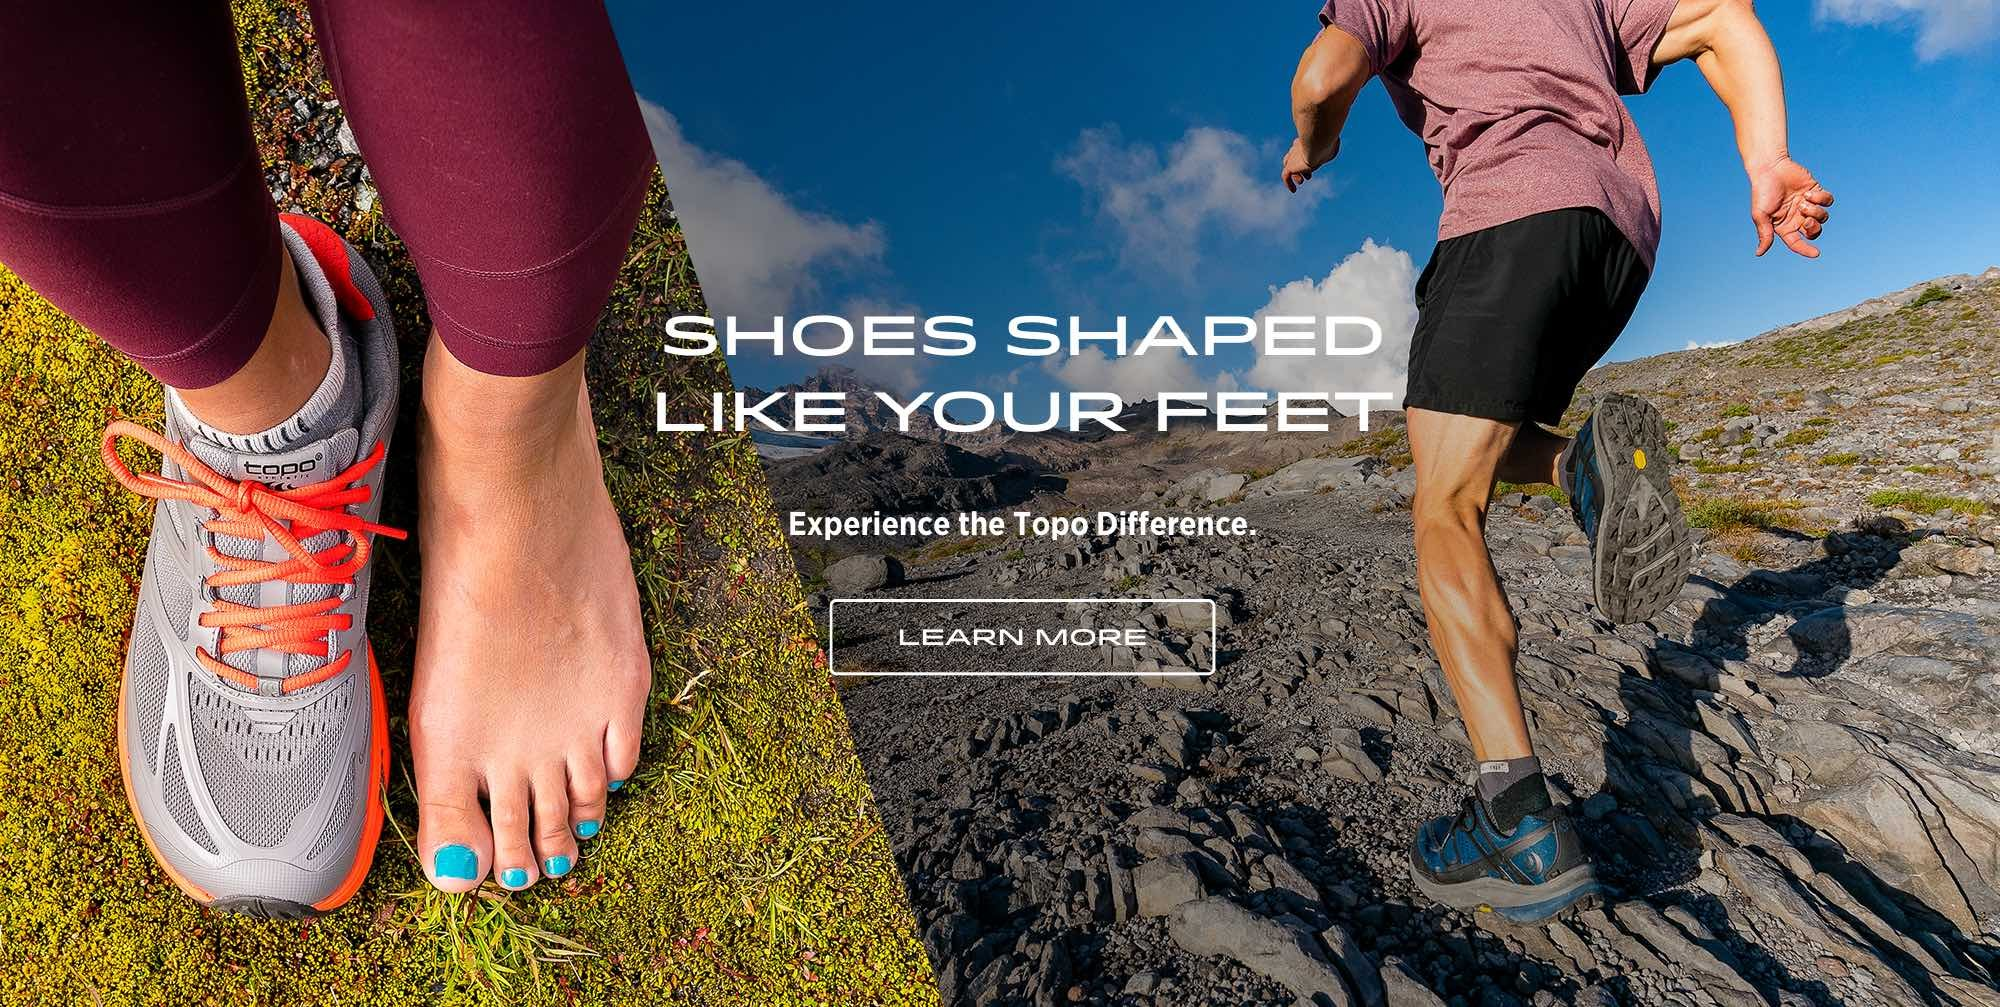 About Topo Athletic Products